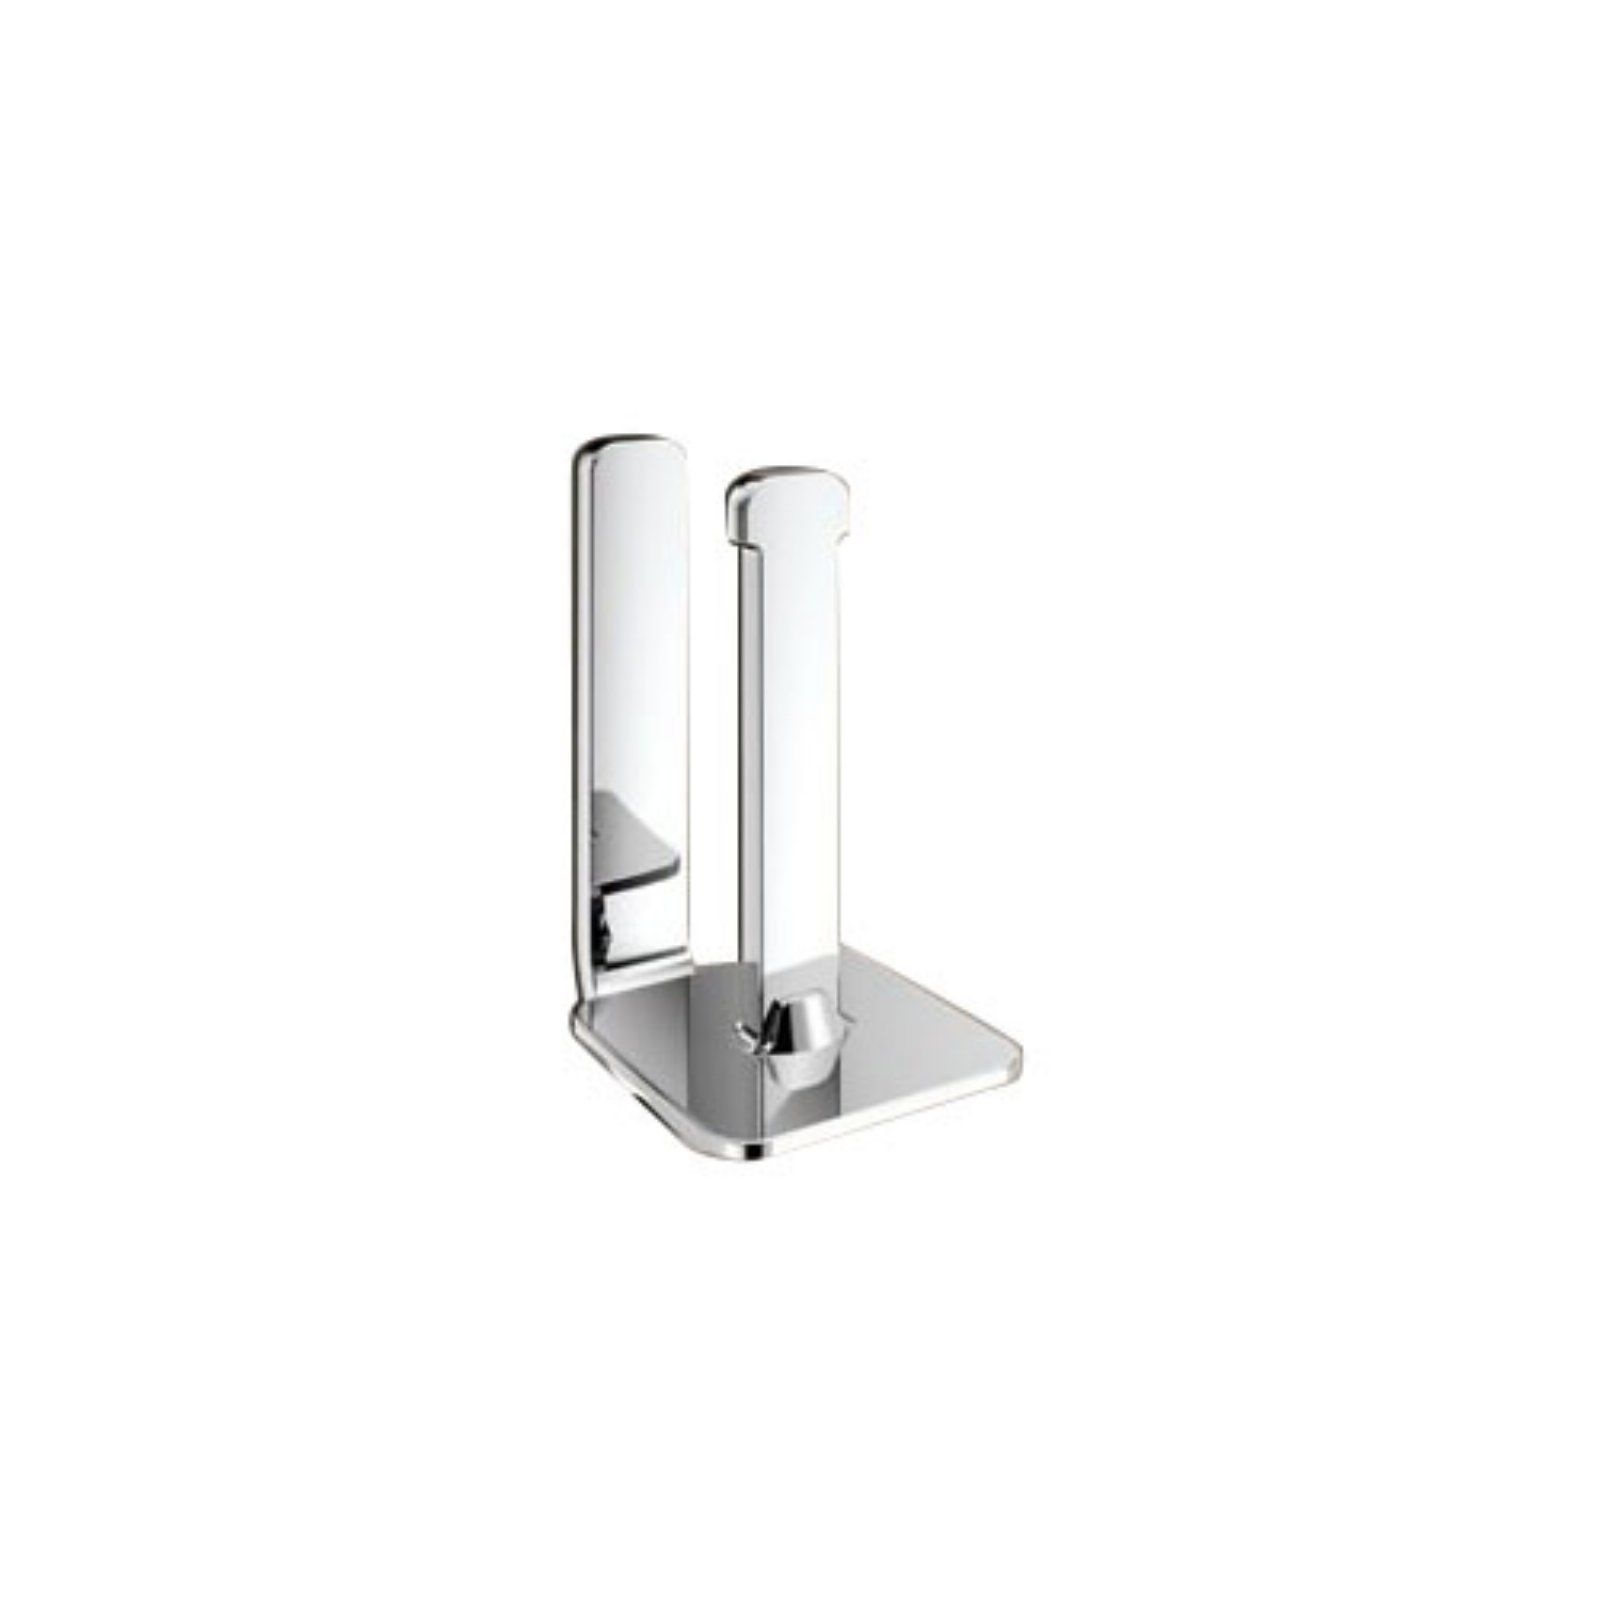 Gedy By Nameeks Outline 483626 Toilet Paper Holder Toilet Paper